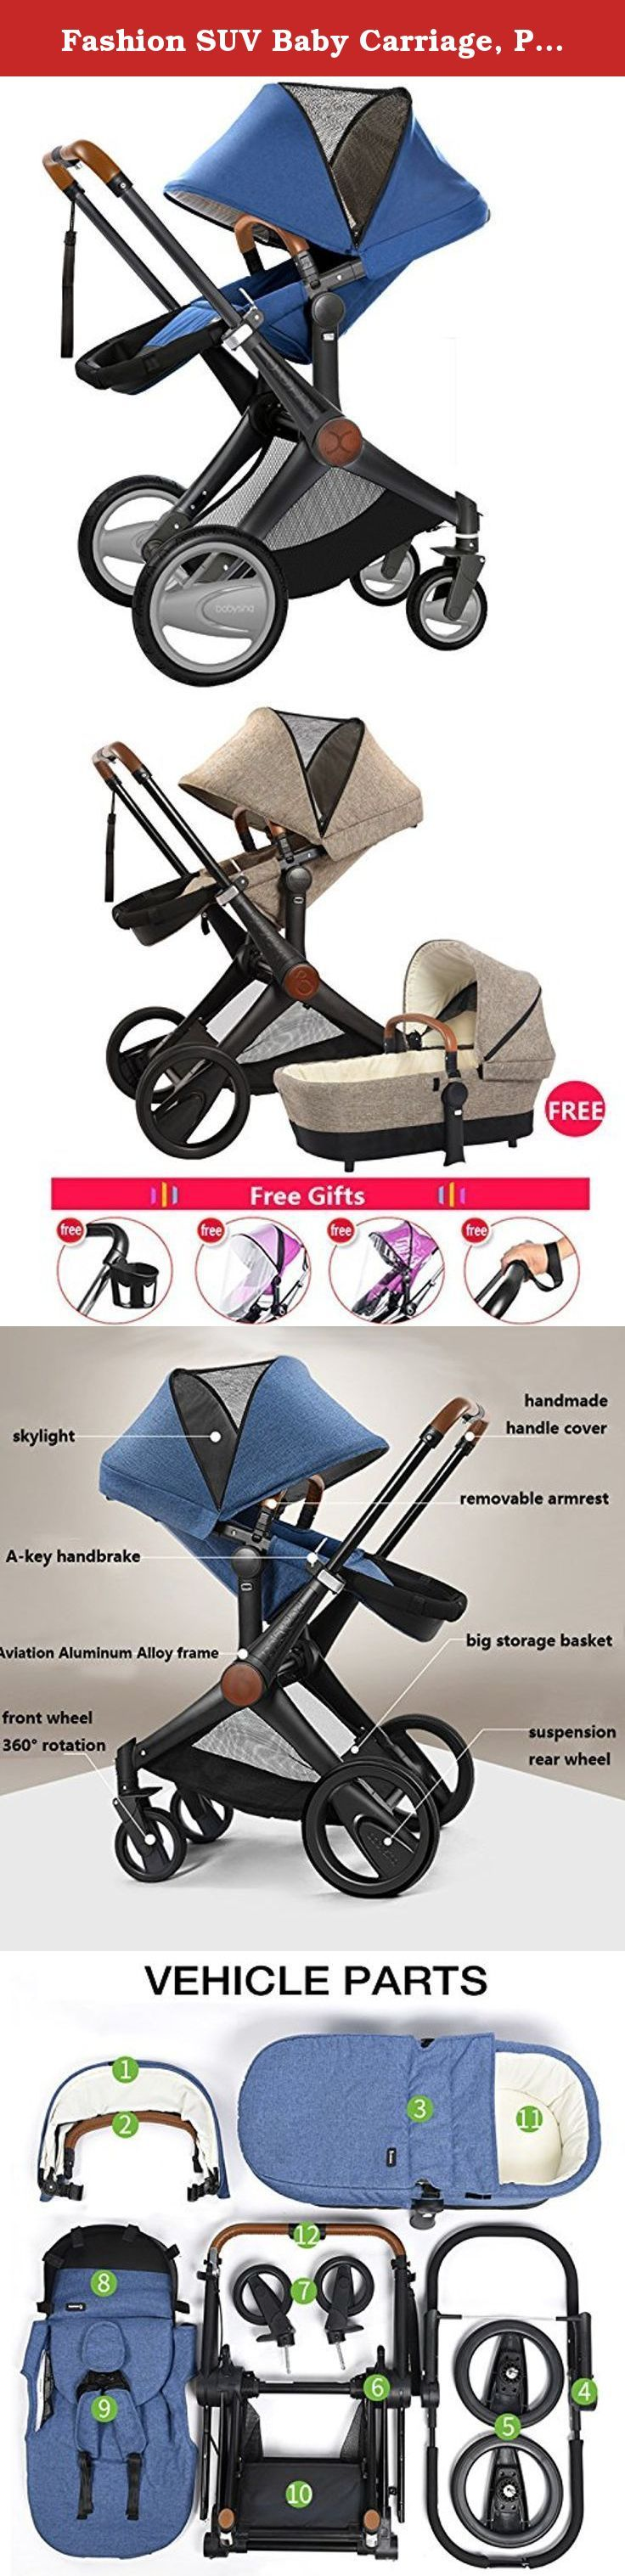 Fashion SUV Baby Carriage, Pushchair, 2 in 1 Baby Stroller